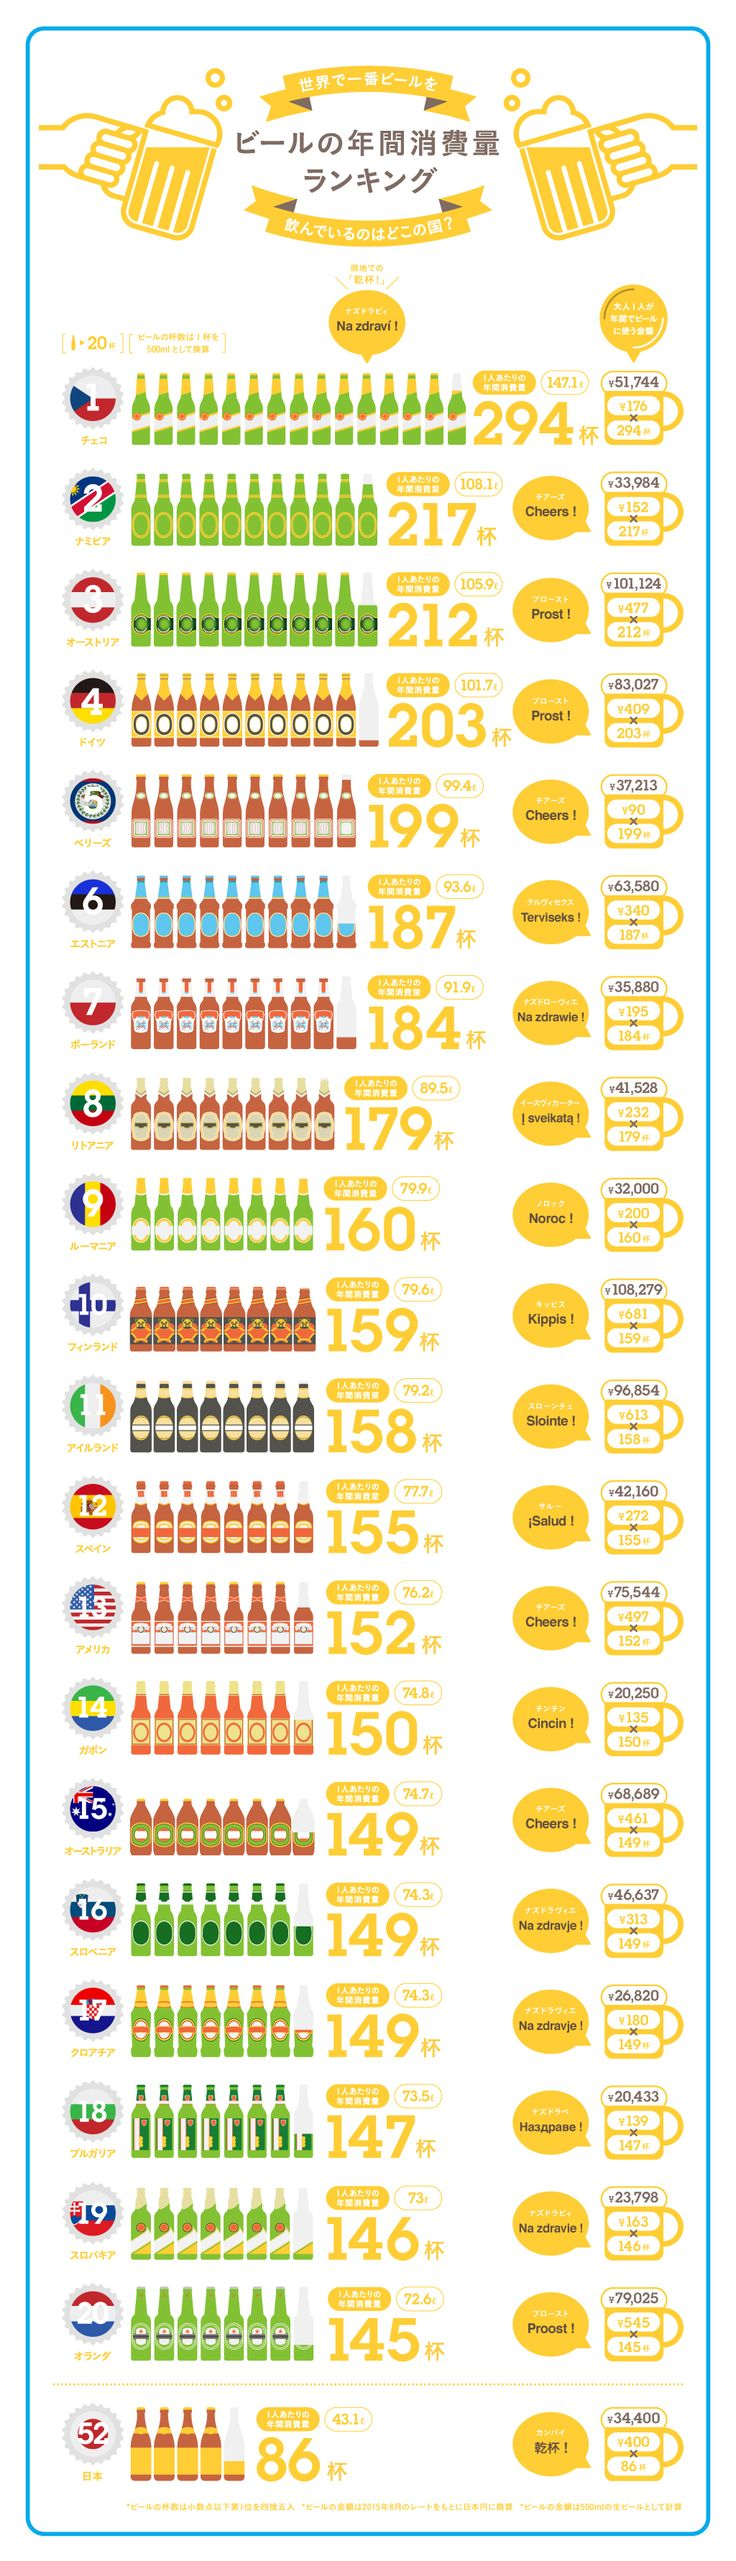 http://www.ana.co.jp/travelandlife/infographics/vol05/